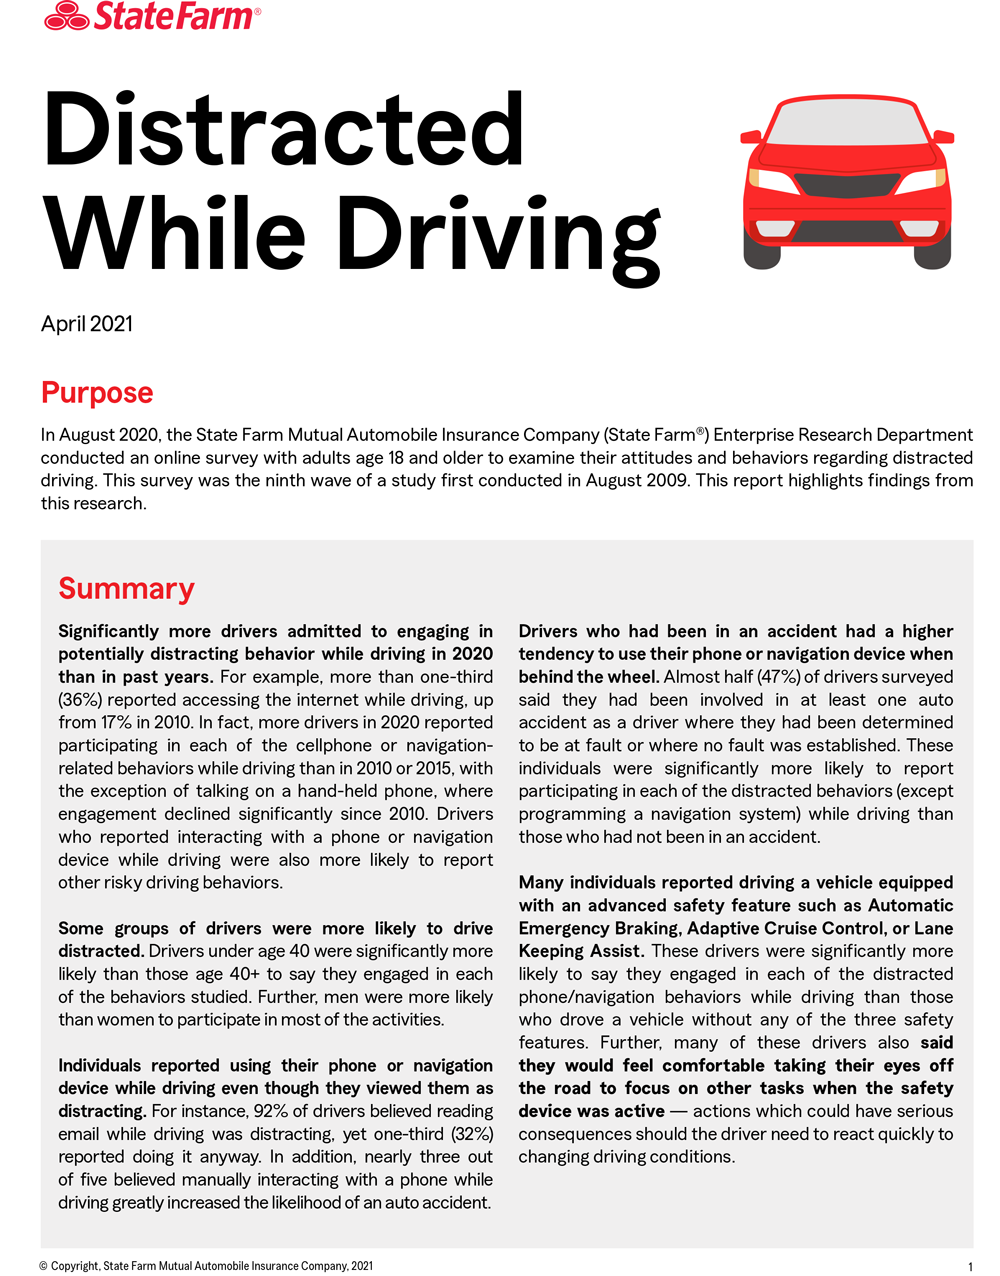 Distracted Driving Report